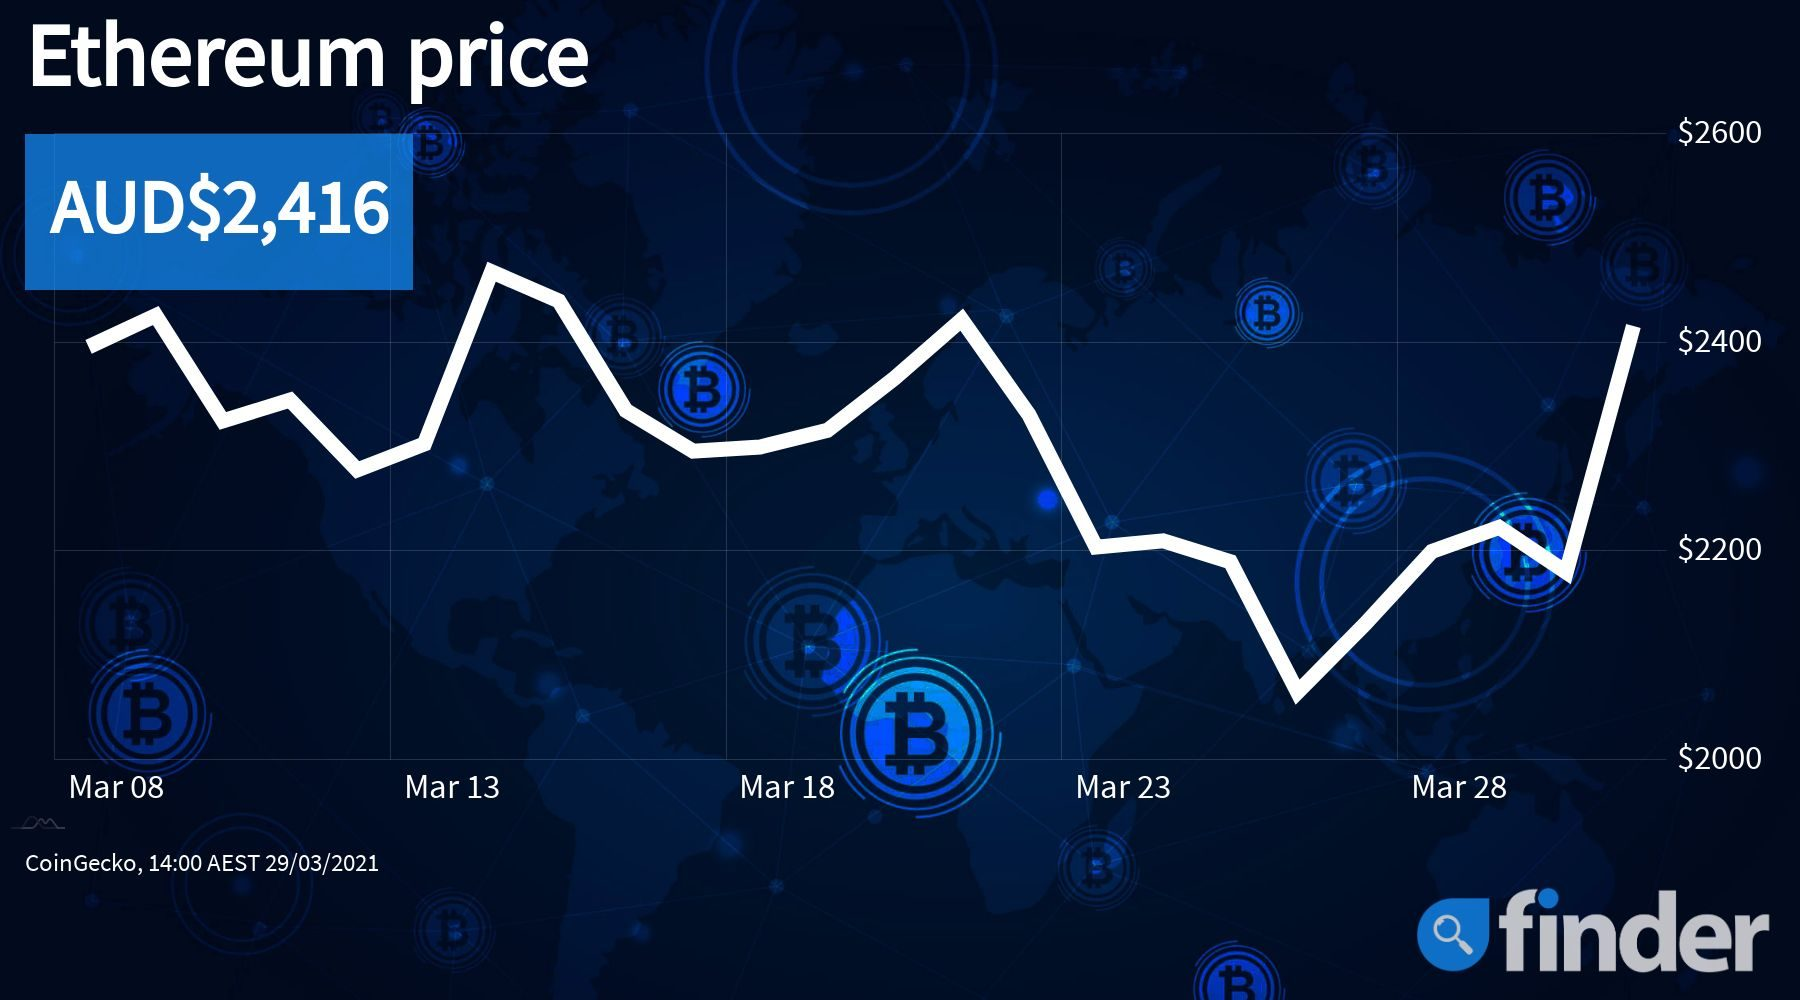 etherprice310321_finder_1800x1000